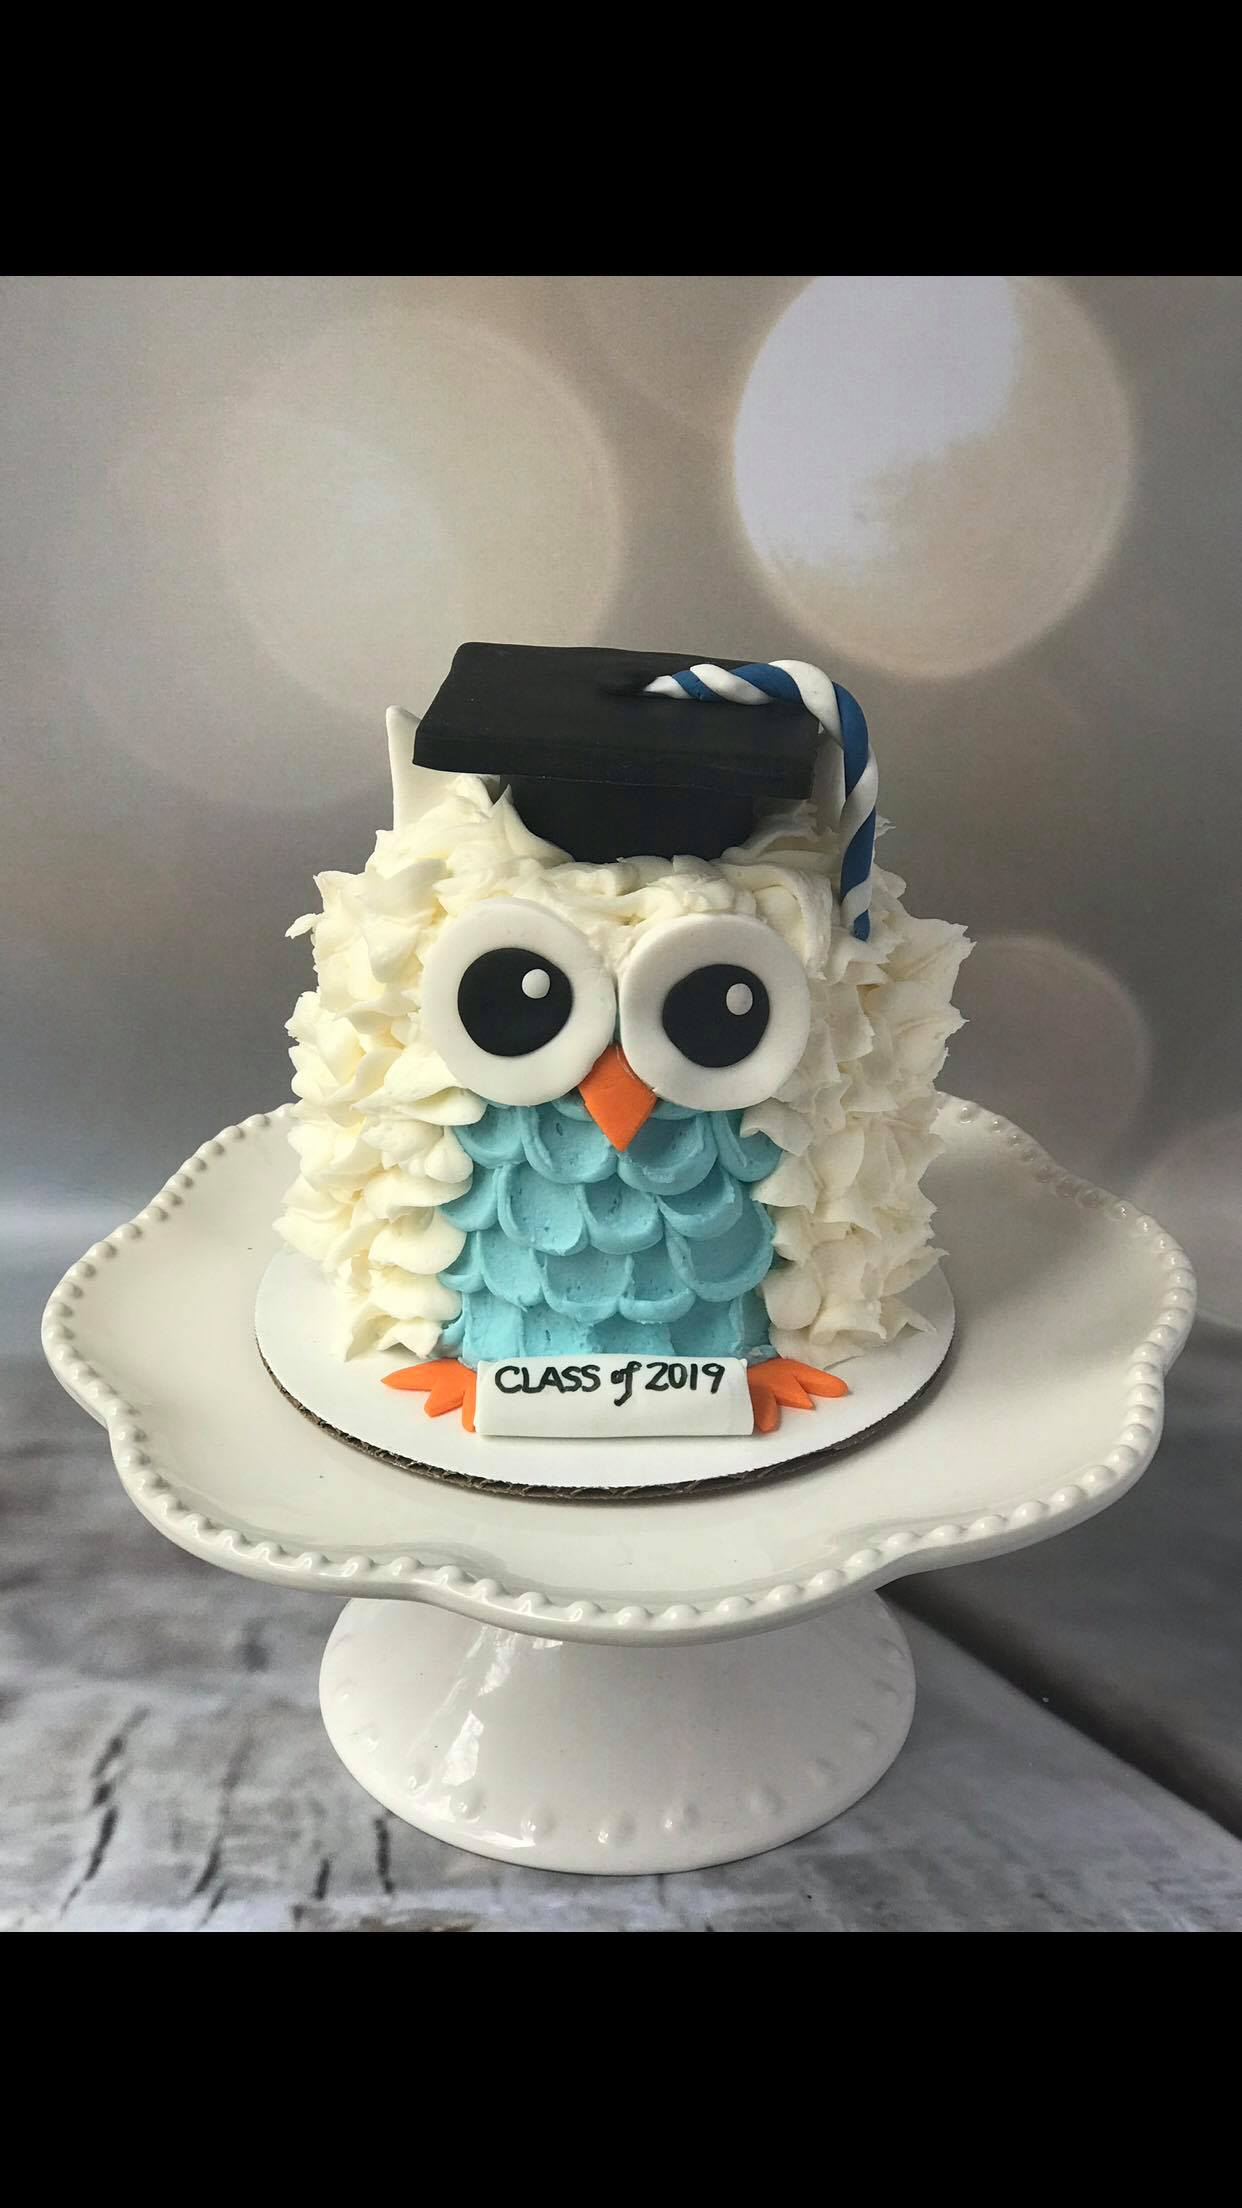 Owl Graduate Mini Cake - $30This adorable mini cake feeds 4-5 people and is a fun little celebration cake for any graduate!!!Available in chocolate, vanilla, funfetti or lemon